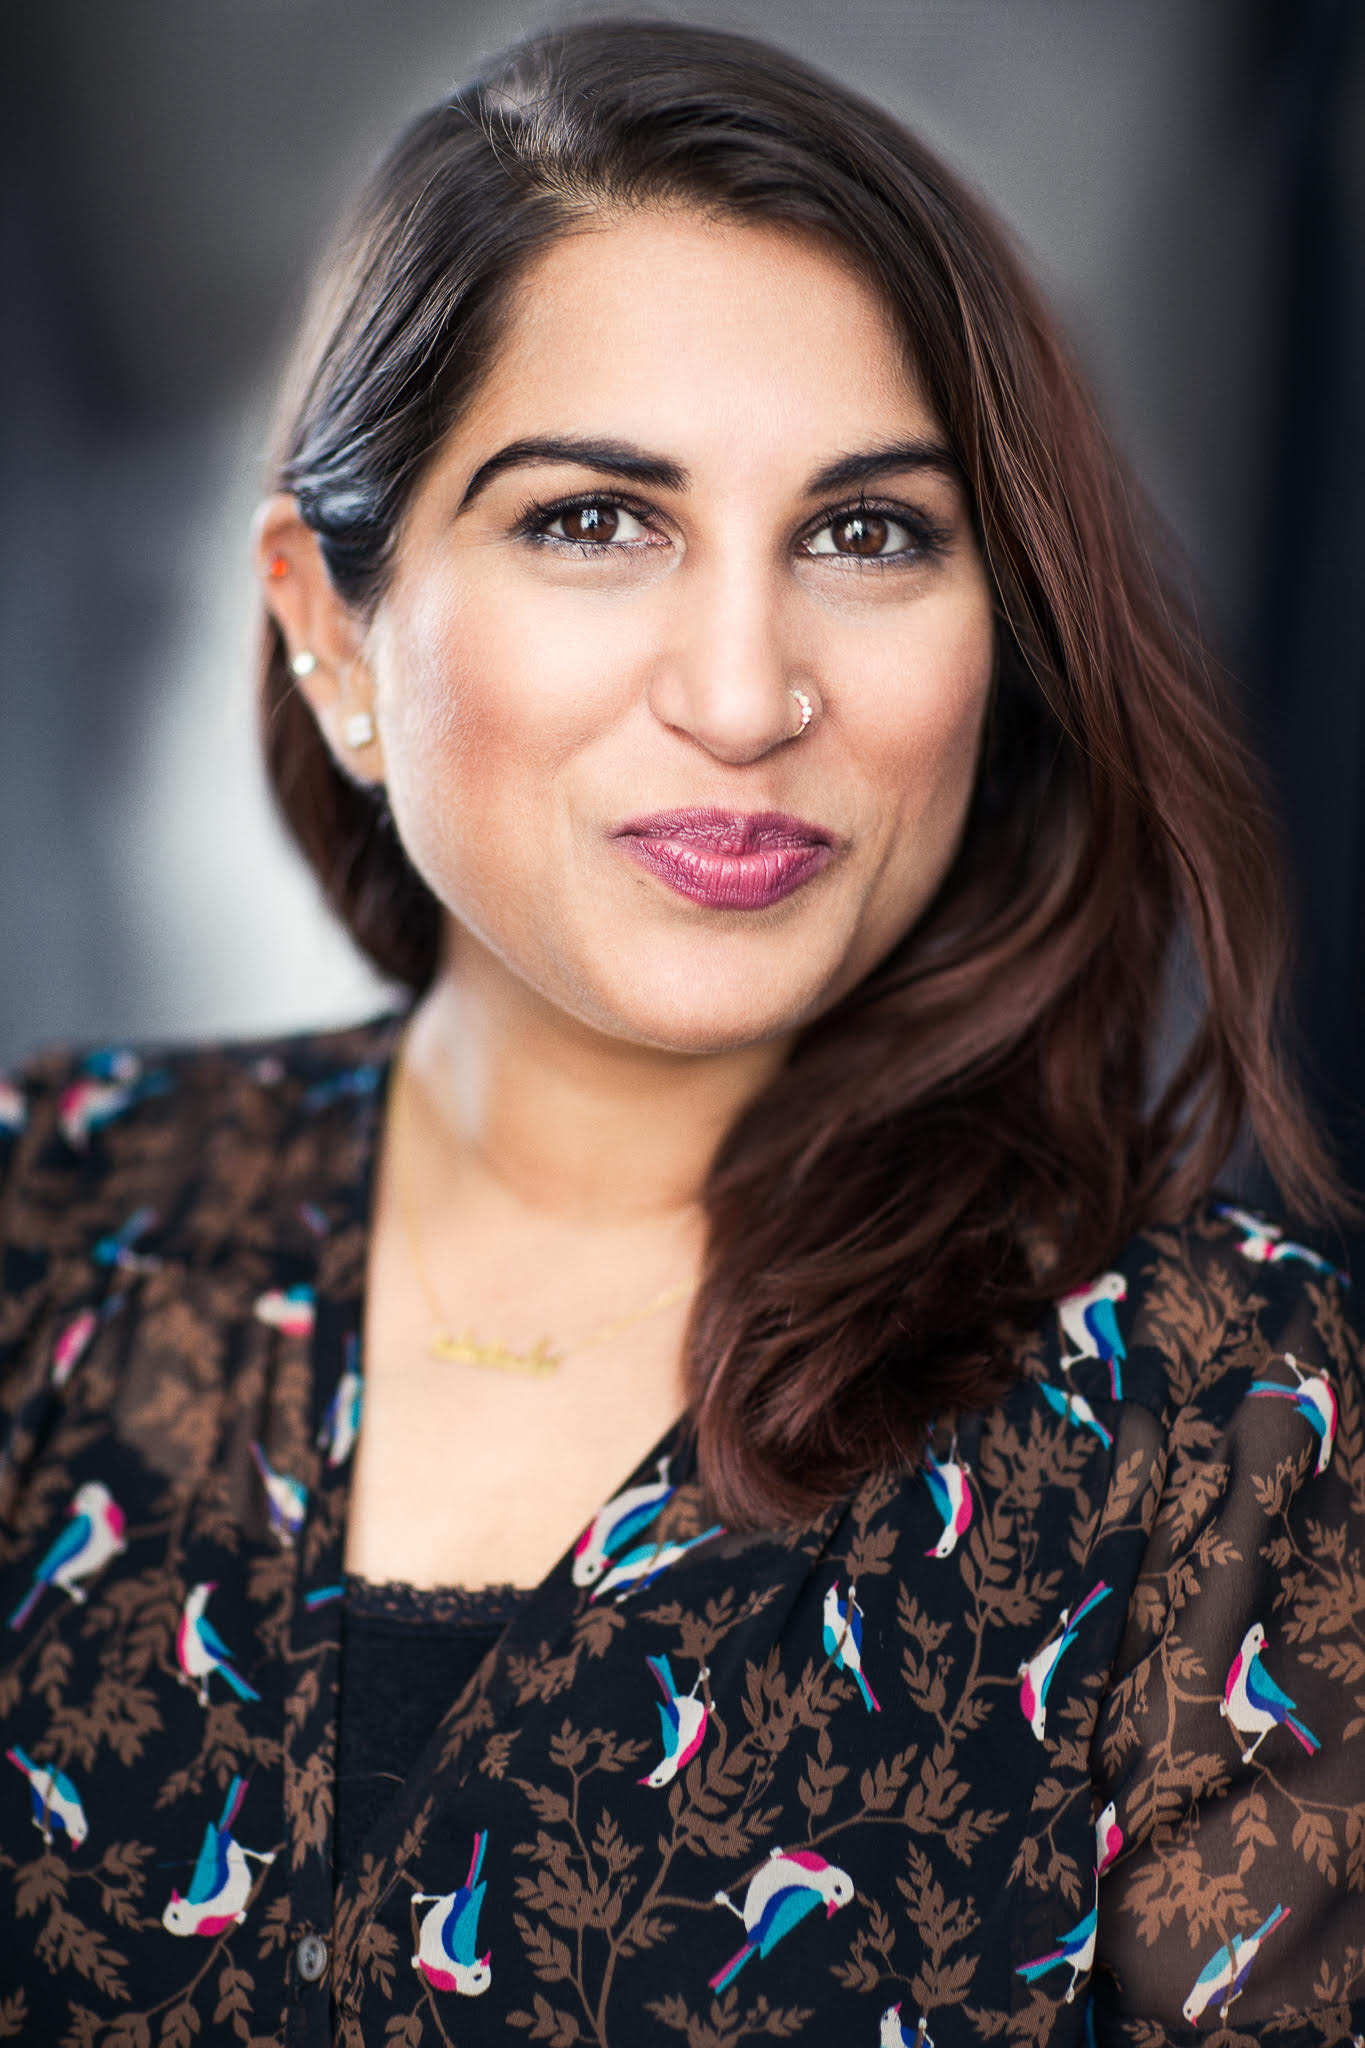 Guleraana Mir is a playwright, theatre practitioner and one-half of The Thelmas, a female-led theatre company devoted to empowering women to redress the equality imbalance in the arts. Notable Credits: Coconut, National Tour, nominated for two Offies including 'Most Promising Playwright'; Playwright in Residence at SOAS. Current: BBC's 'Northern Voices' development program.